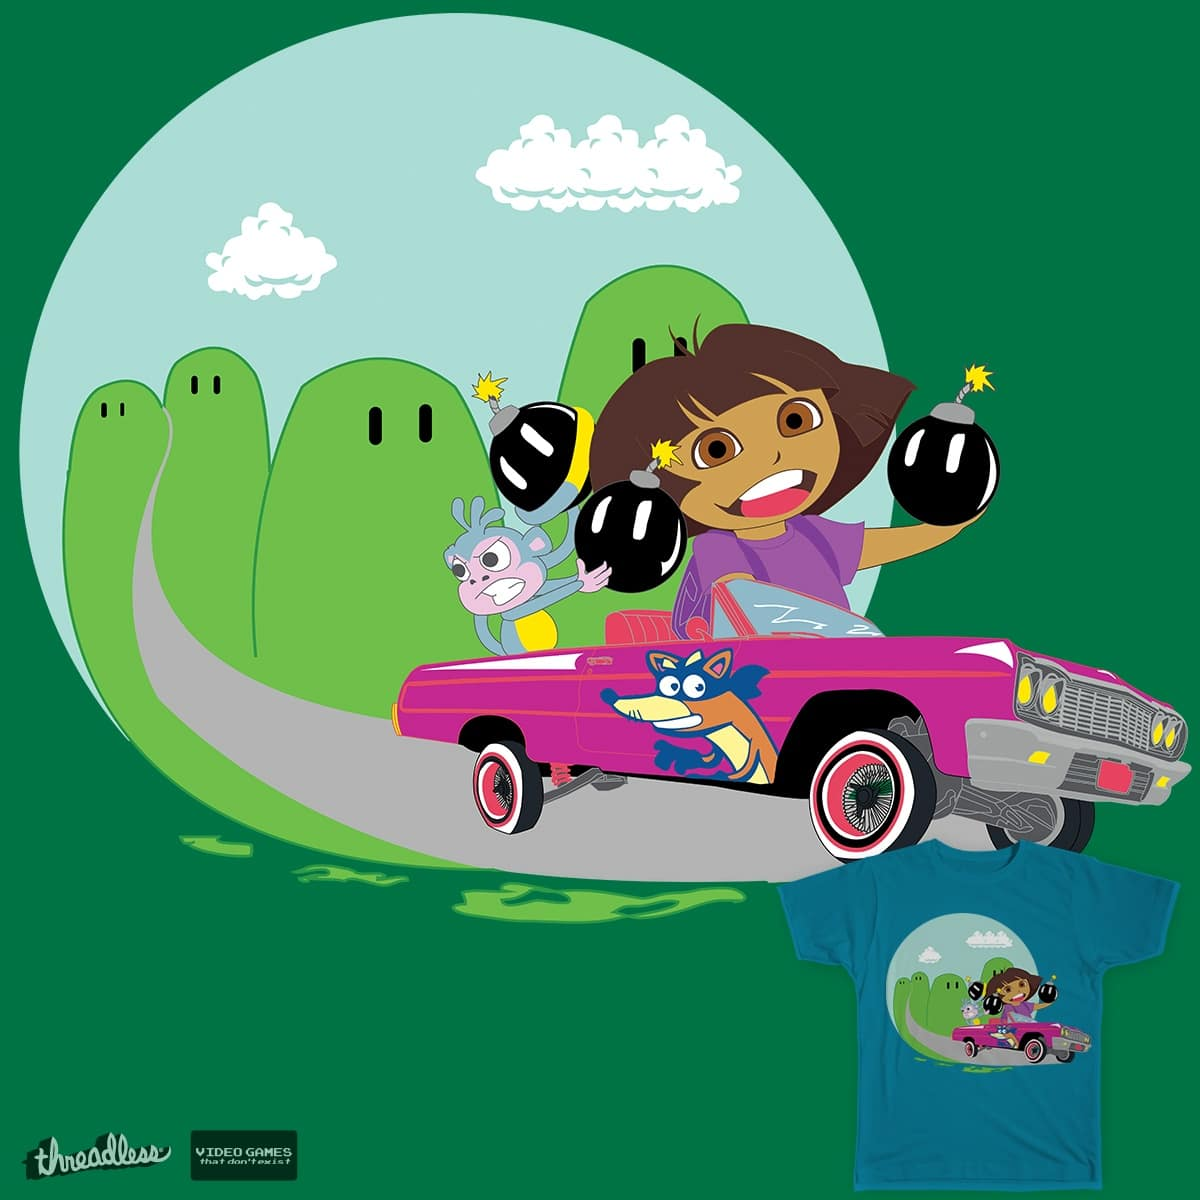 The Exploder! by Koshe82 on Threadless